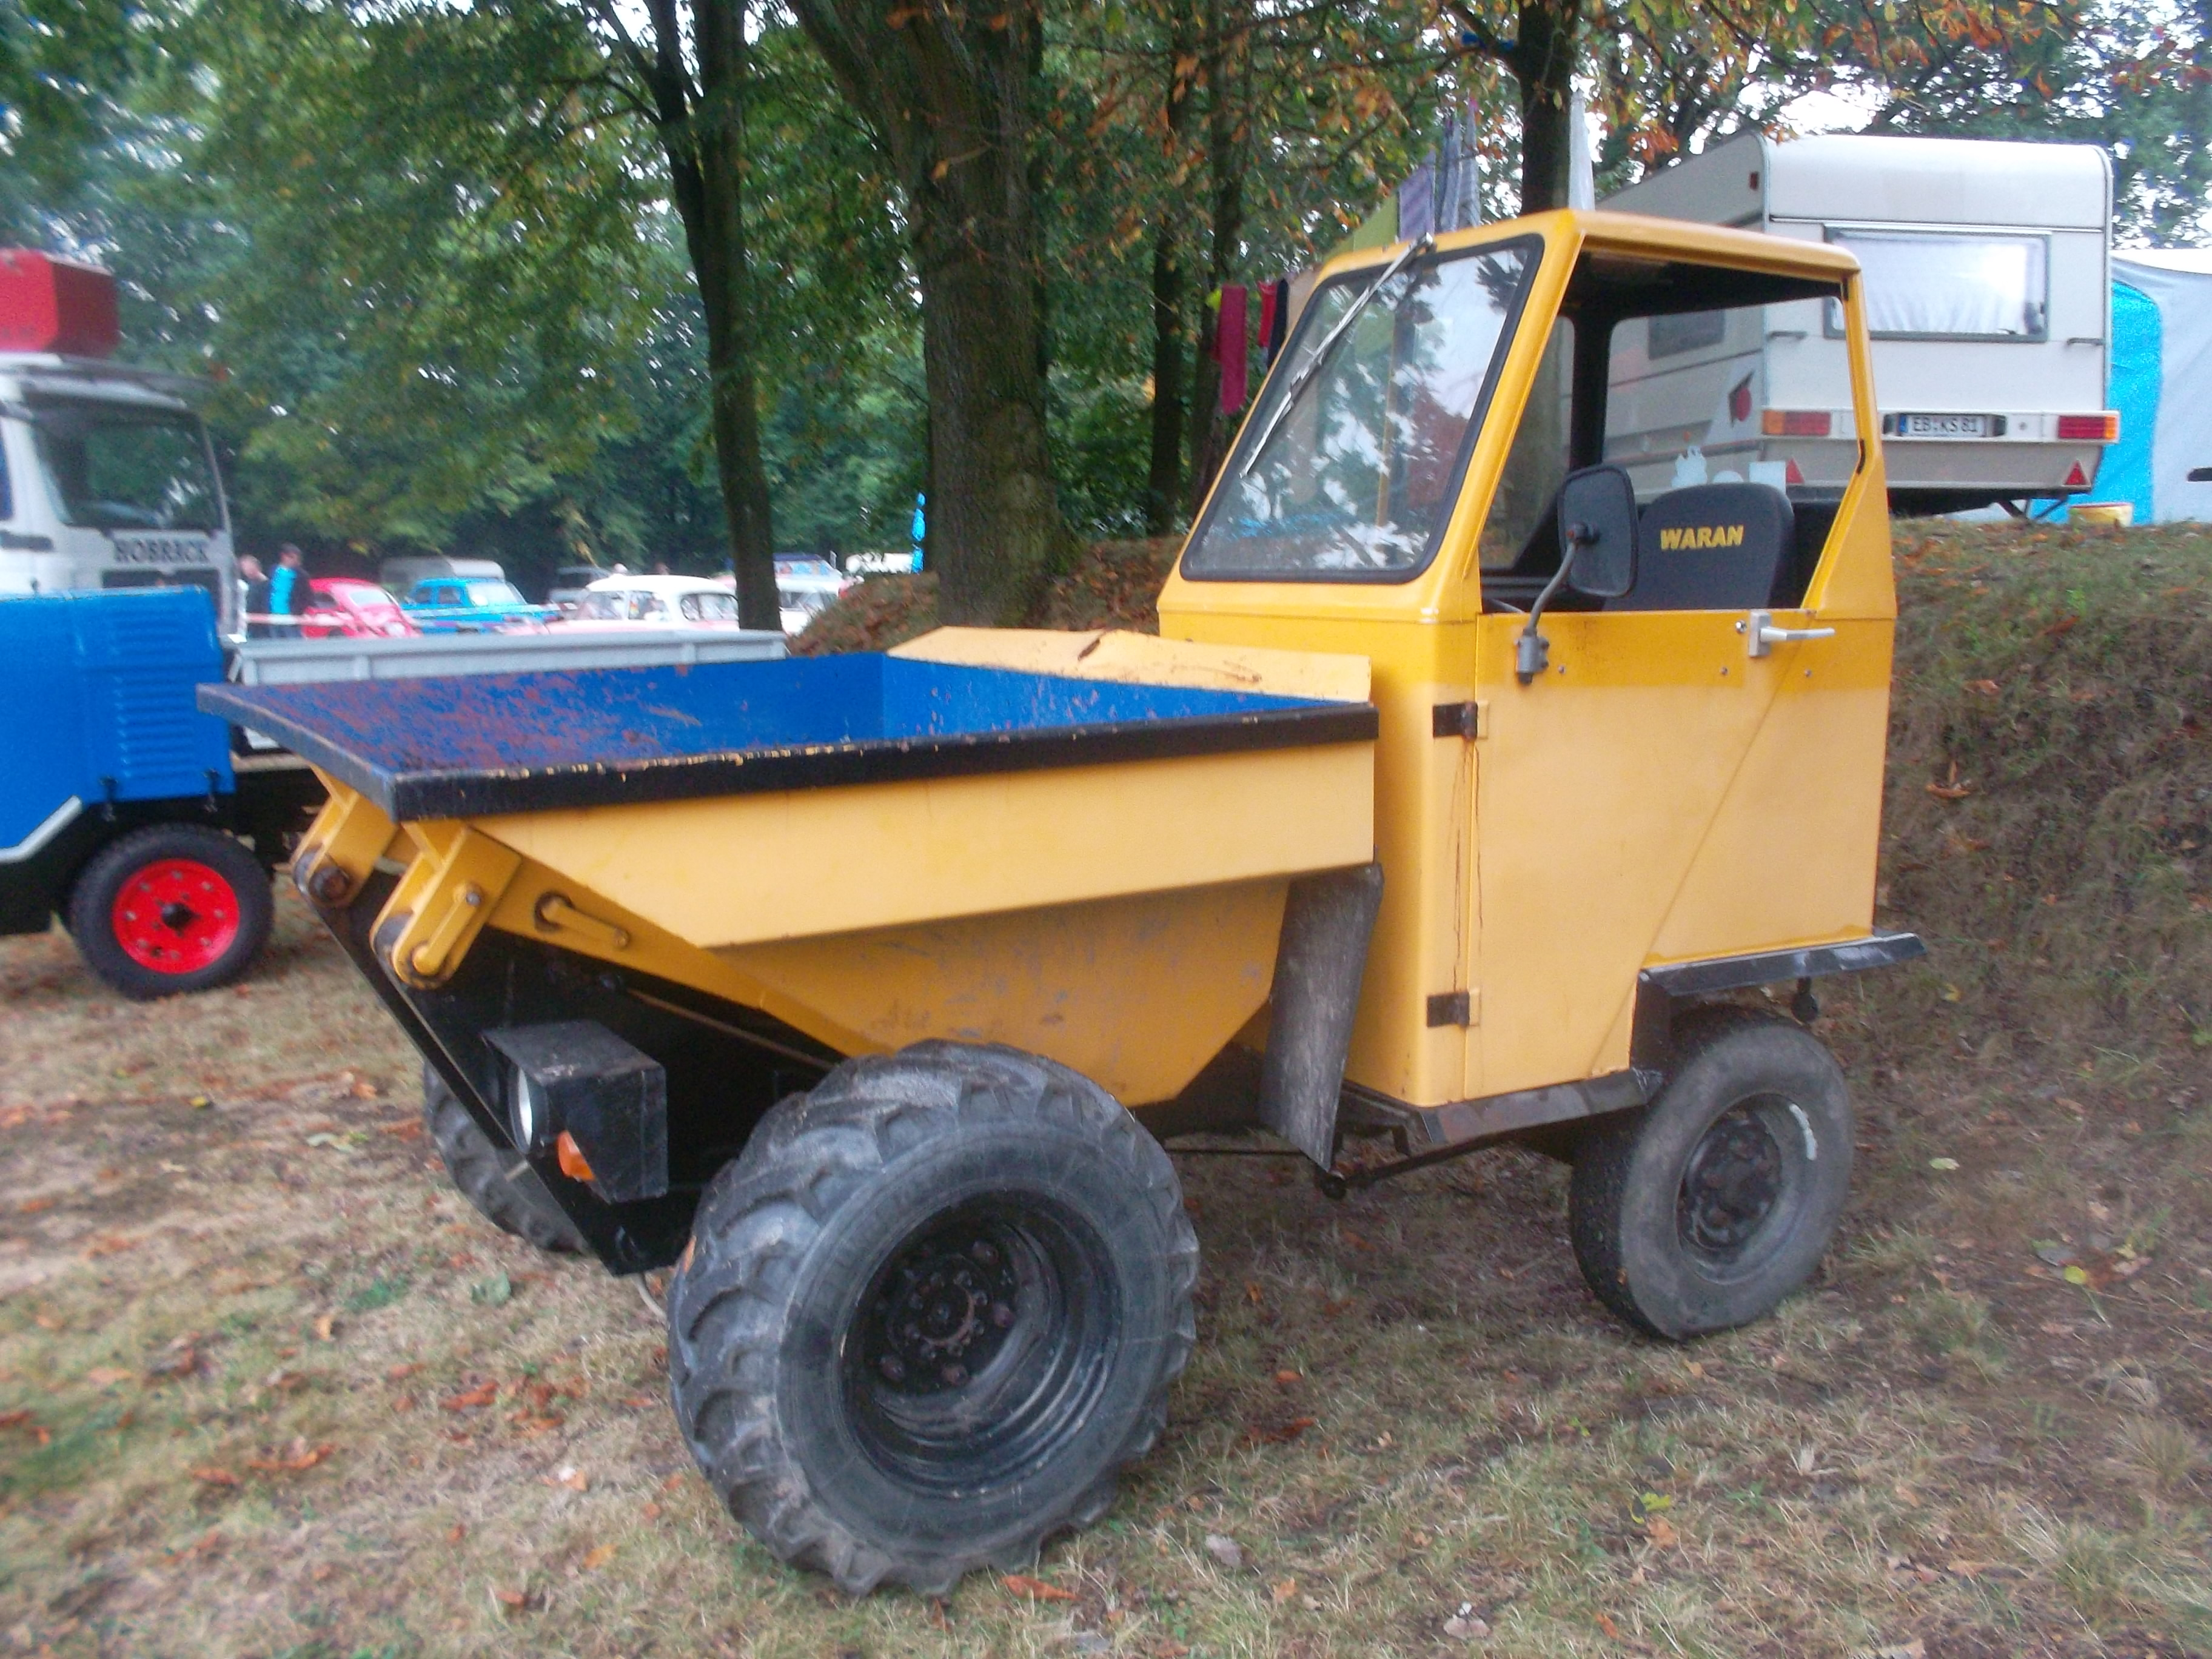 File:Waran (Dumper) 1501 FS (side).jpg